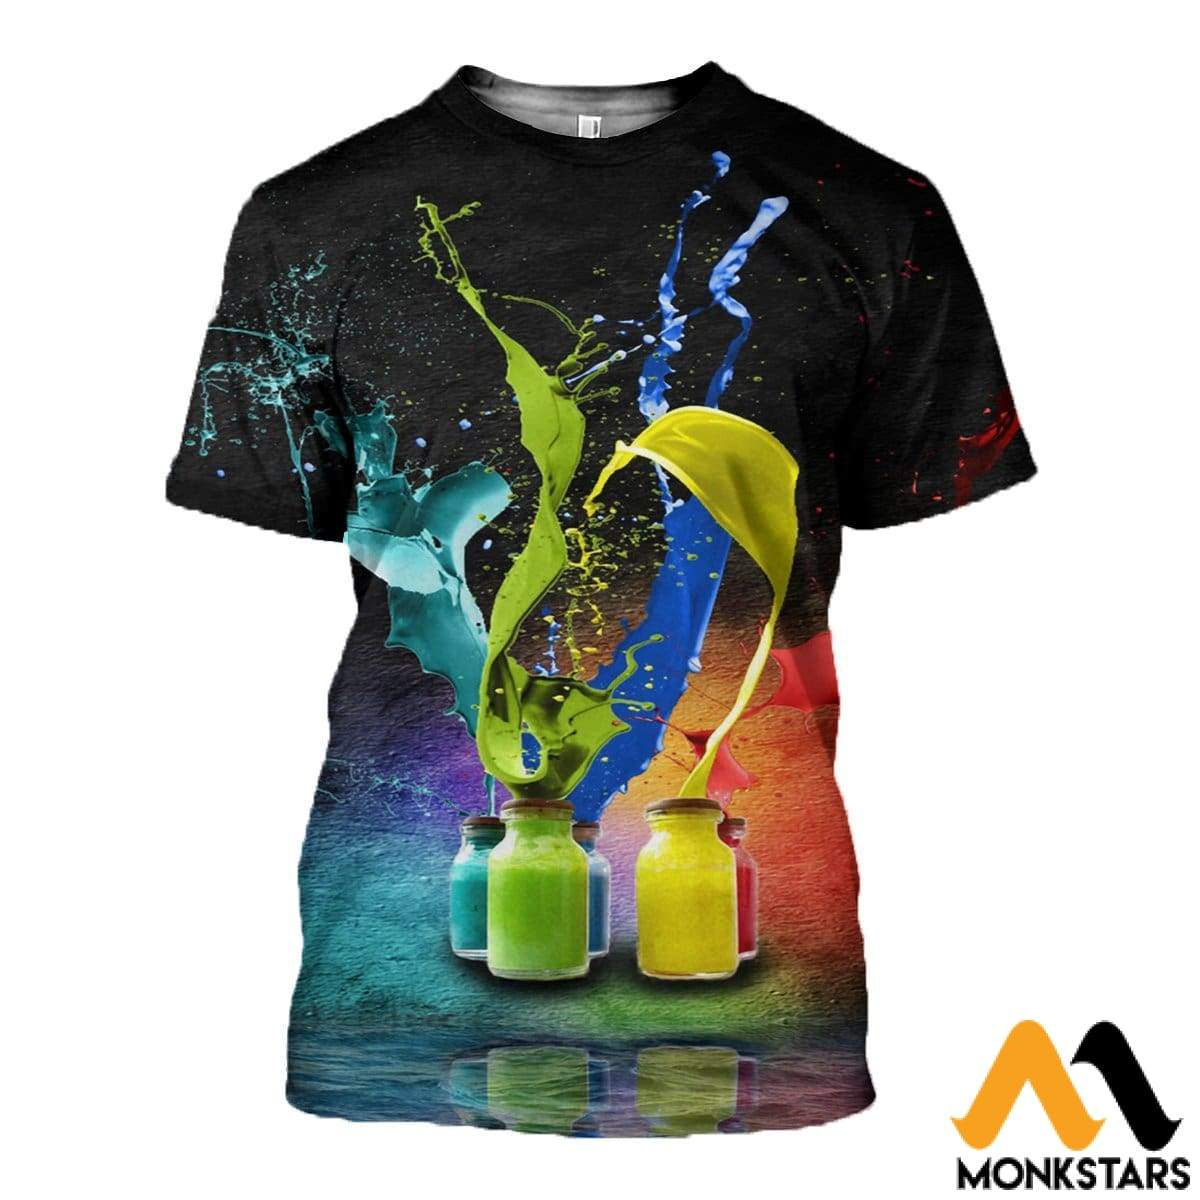 3D All Over Printed Color T-Shirt Hoodie St0L170406 / Xs Clothes